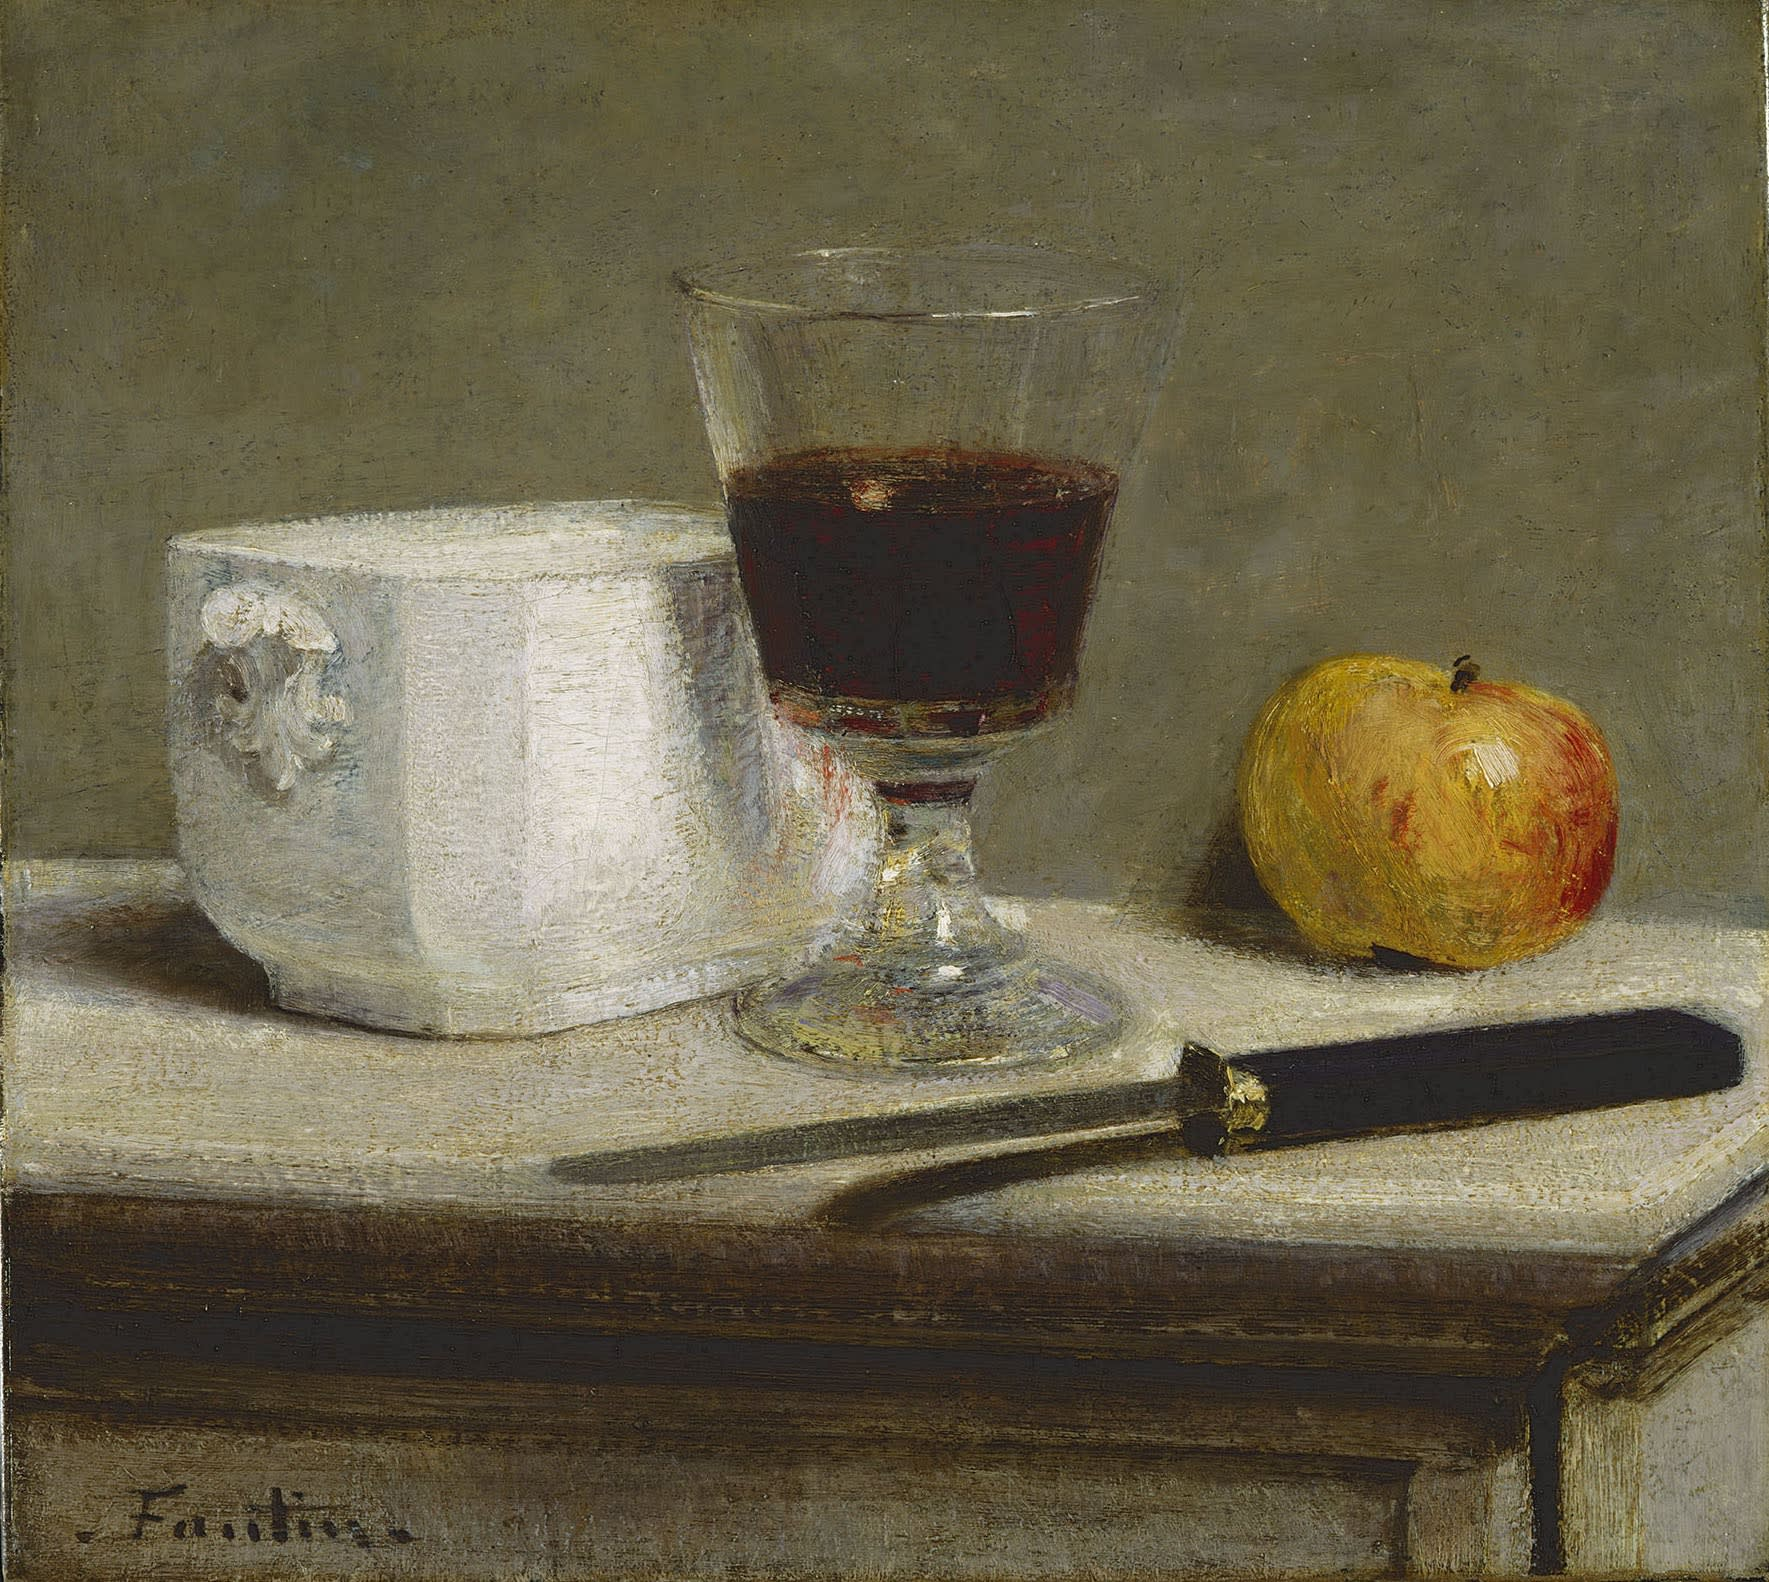 "<span class=""link fancybox-details-link""><a href=""/artists/85-henri-fantin-latour/works/9444-henri-fantin-latour-nature-morte-au-verre-de-vin/"">View Detail Page</a></span><div class=""artist""><span class=""artist""><strong>Henri Fantin-Latour</strong></span></div>